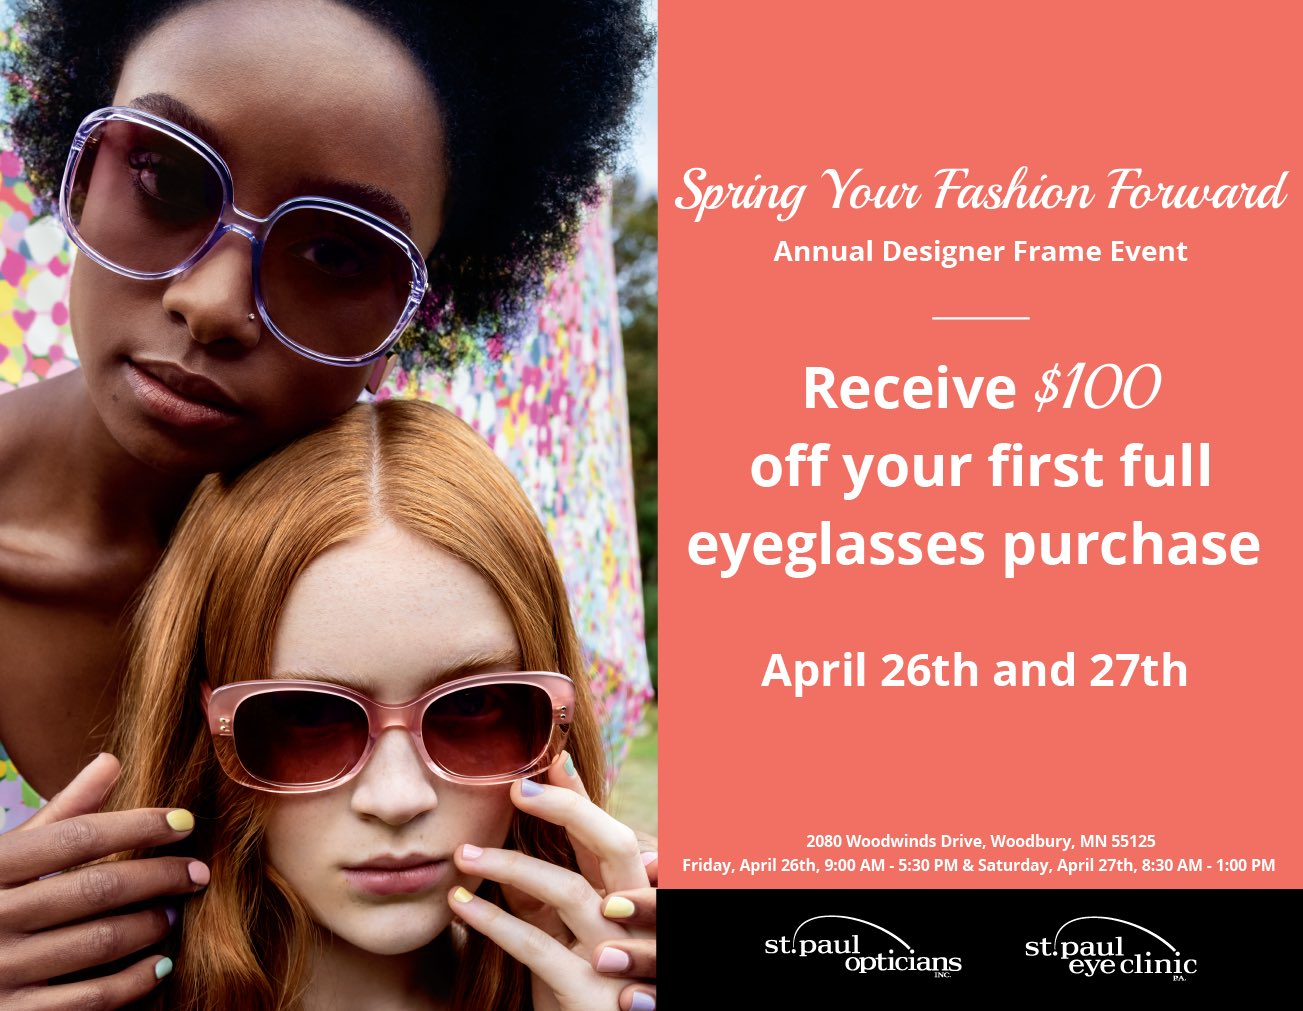 Receive $100 off your first full eyeglasses purchase. April 26 and 27th.